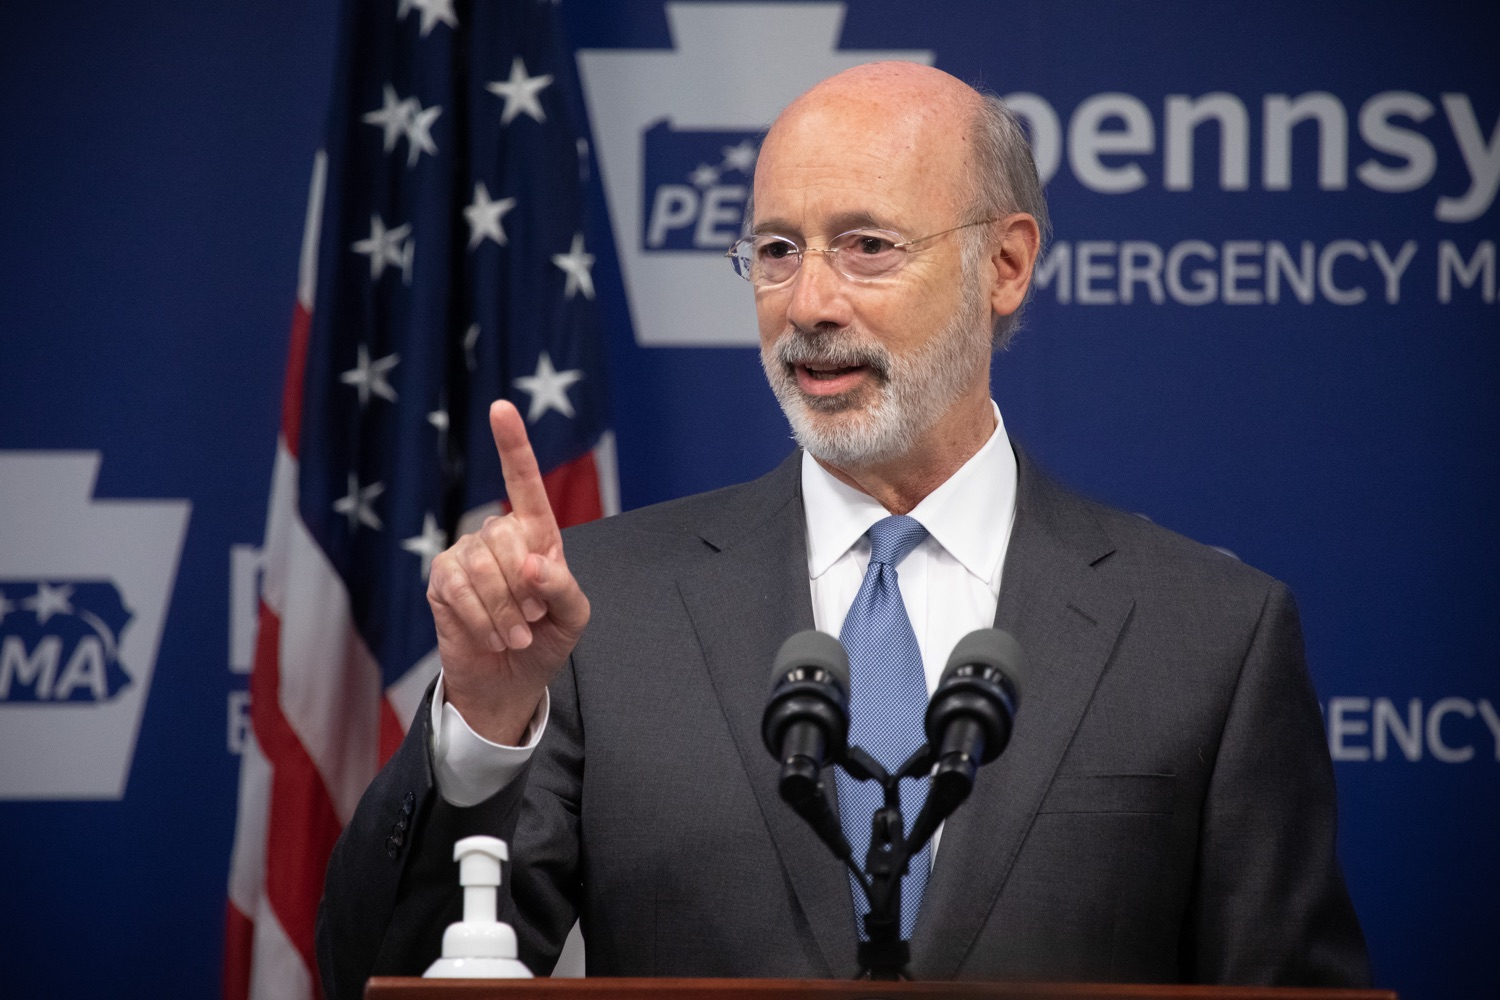 "<a href=""https://filesource.wostreaming.net/commonwealthofpa/photo/18088_gov_covid_update_dz_0004.jpg"" target=""_blank"">⇣ Download Photo<br></a>Governor Tom Wolf answers questions from the press. Governor Tom Wolf announced that people with intellectual disabilities and autism and the providers of support services for these vulnerable Pennsylvanians will receive $260 million in CARES Act funding to help continue to provide services during the COVID-19 pandemic.  Gov. Wolf was joined by Department of Human Services Secretary Teresa Miller, who outlined to details of funding allocations.  JUNE 15, 2020 - HARRISBURG, PA"